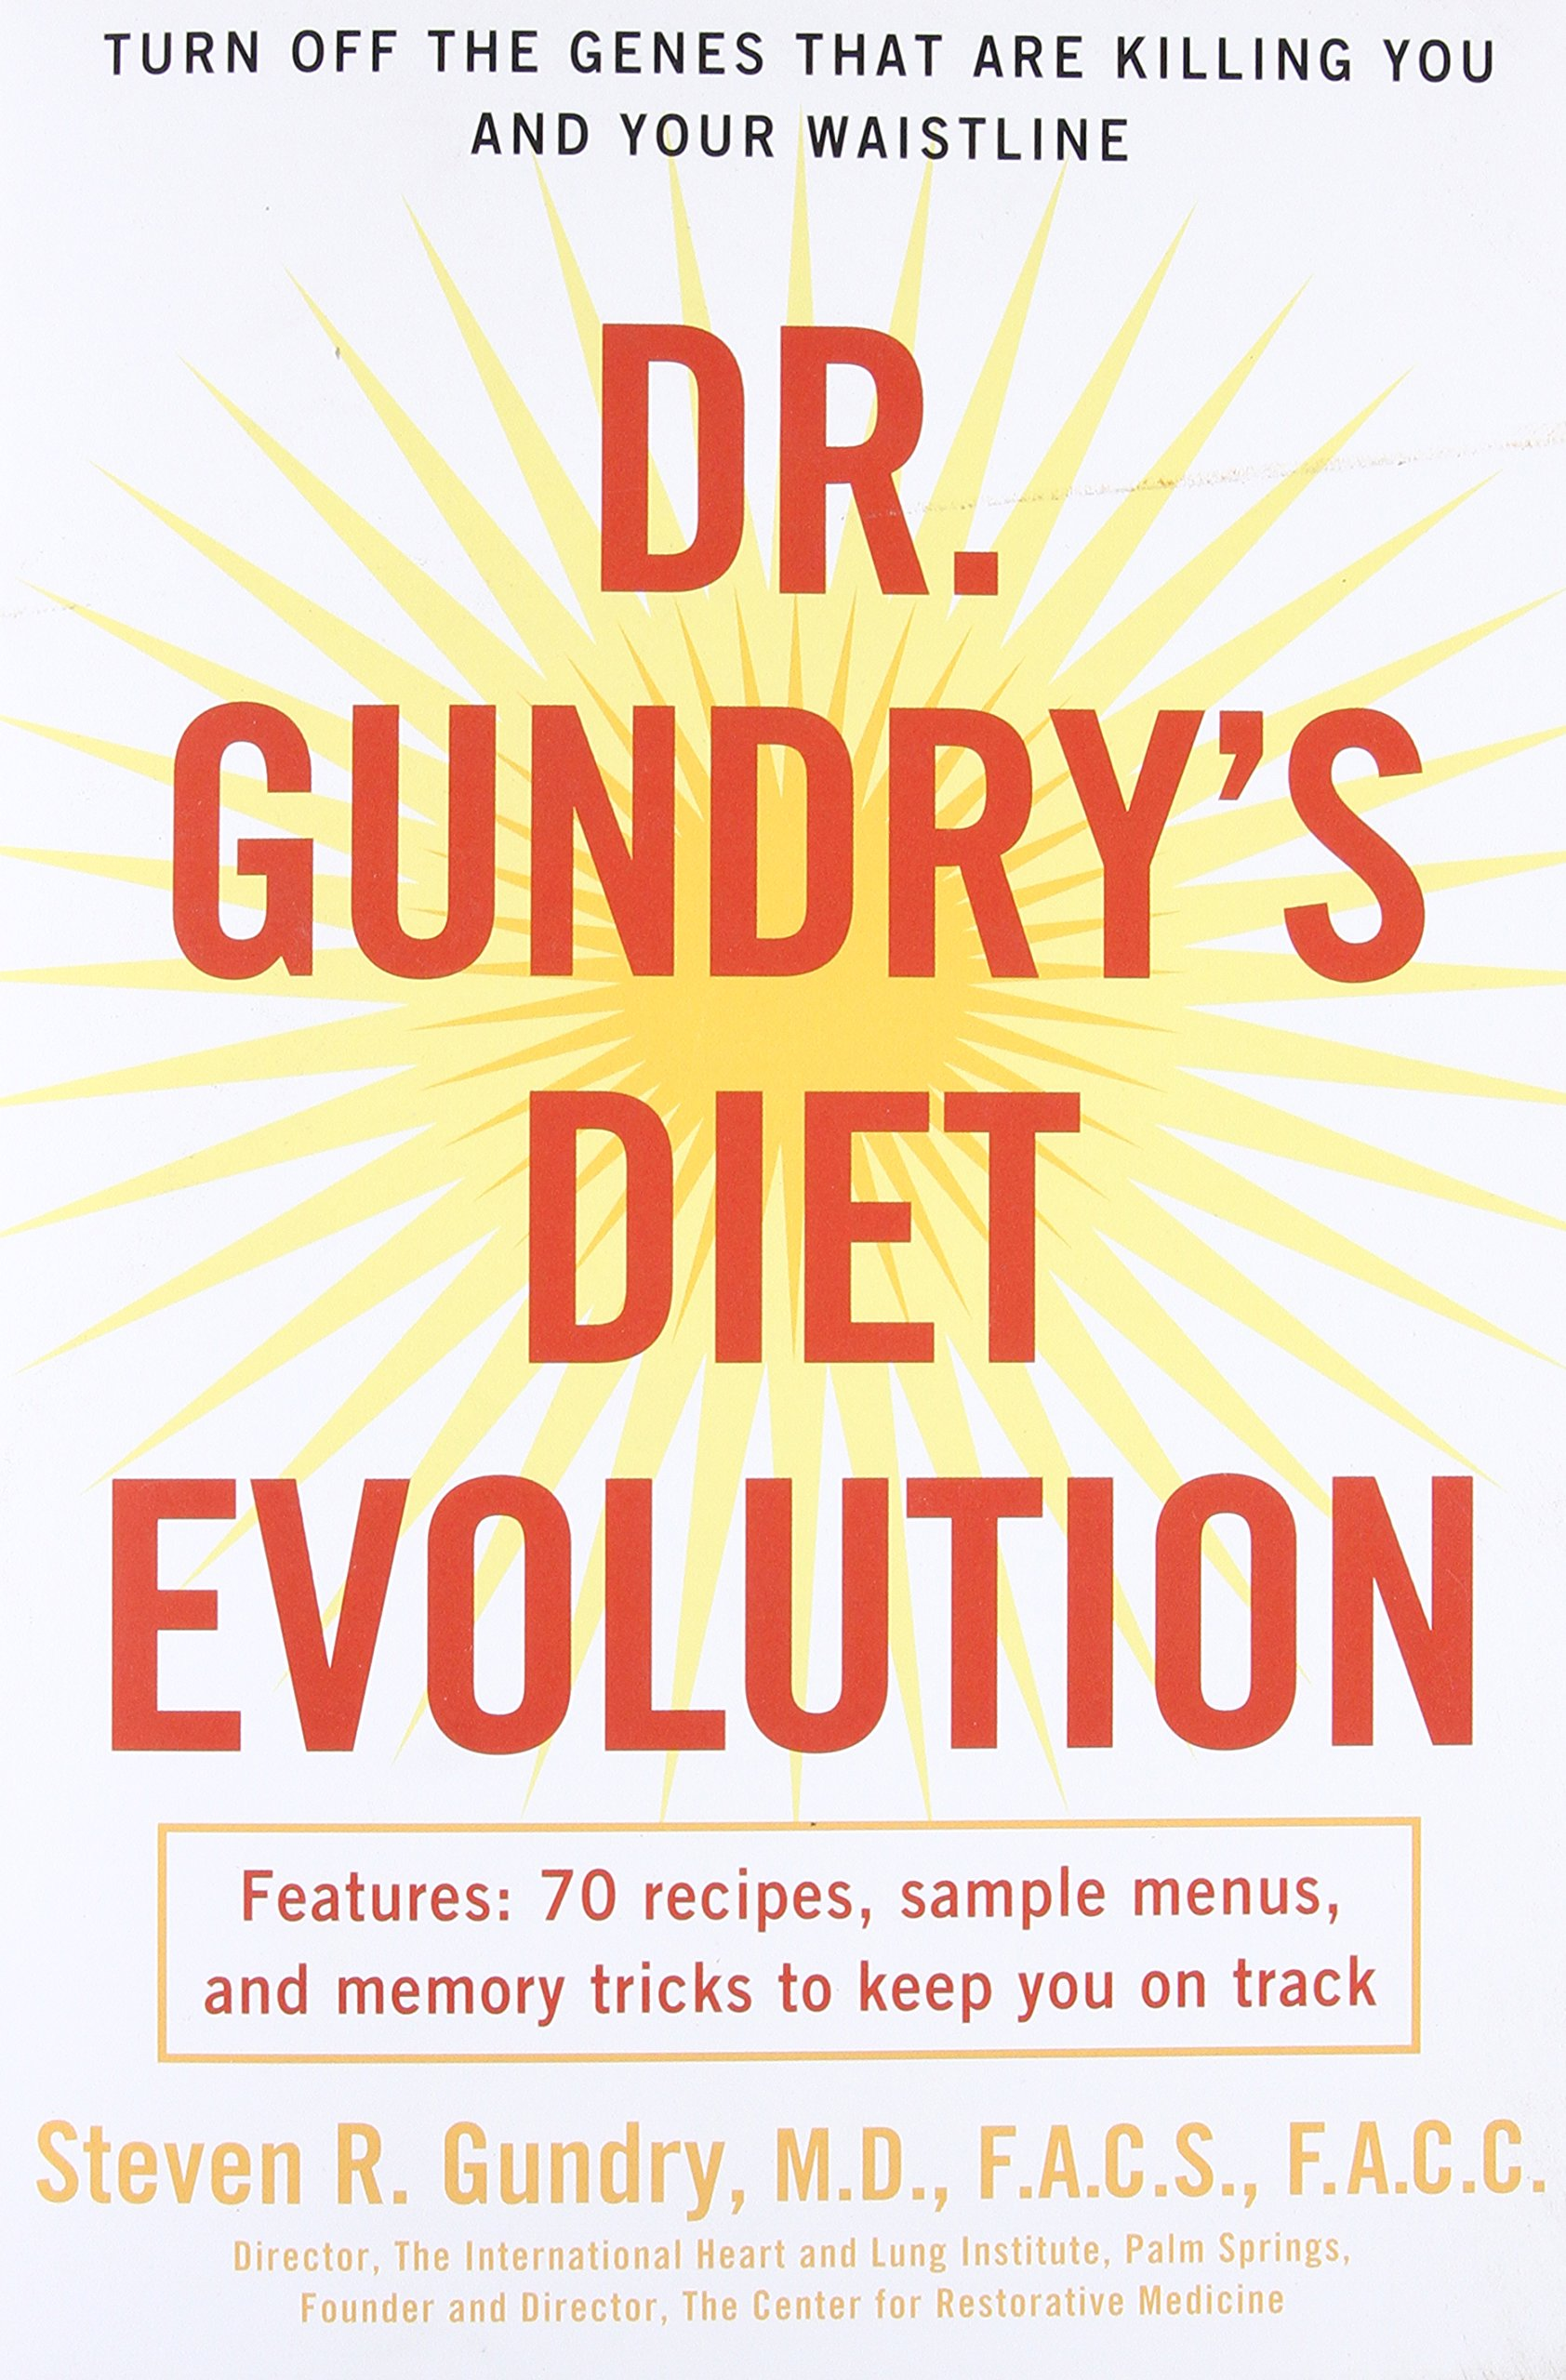 dr gundry u0027s diet evolution turn off the genes that are killing